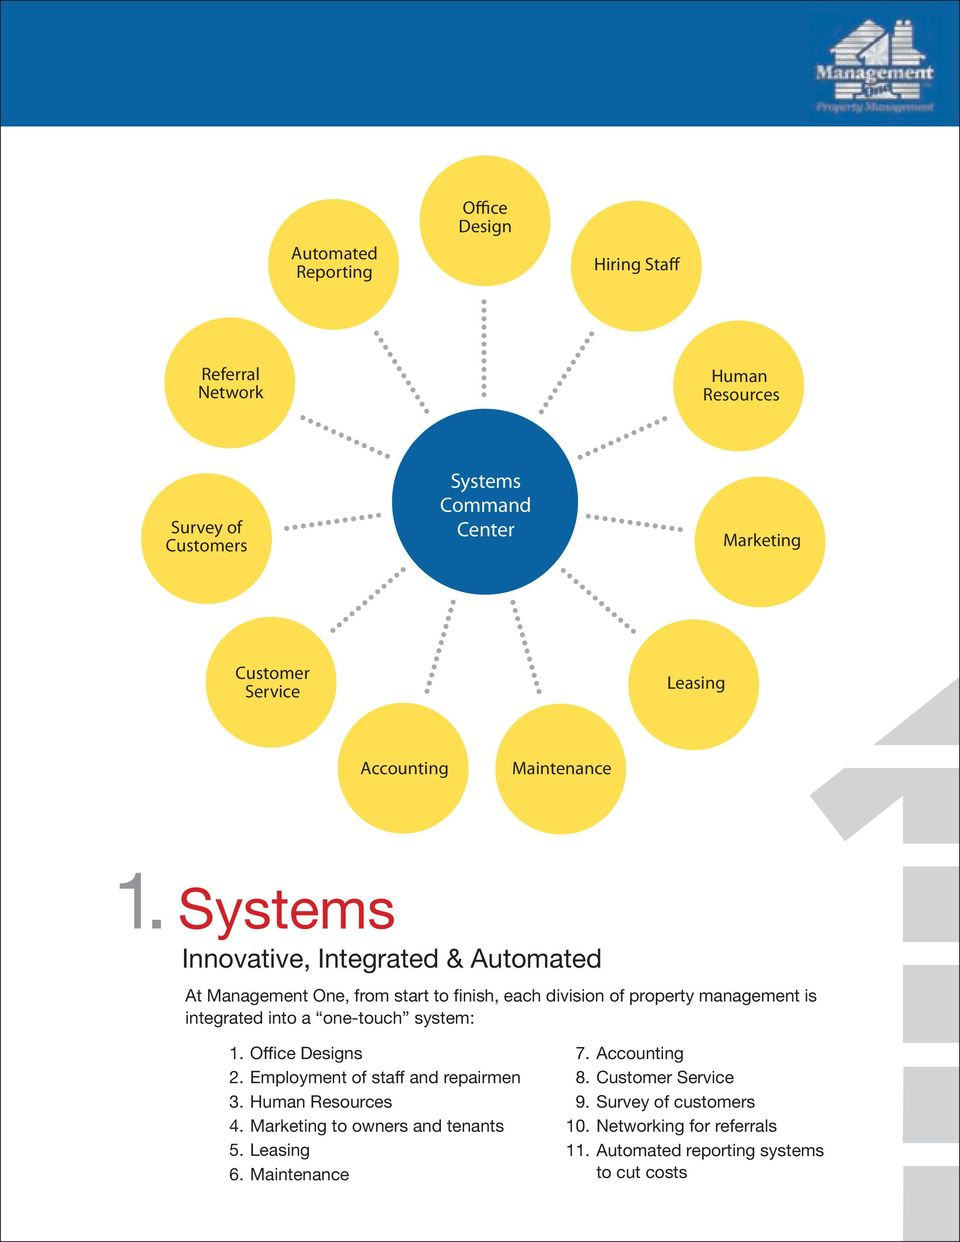 Systems Innovative, Integrated & Automated At Management One, from start to finish, each division of property management is integrated into a one-touch